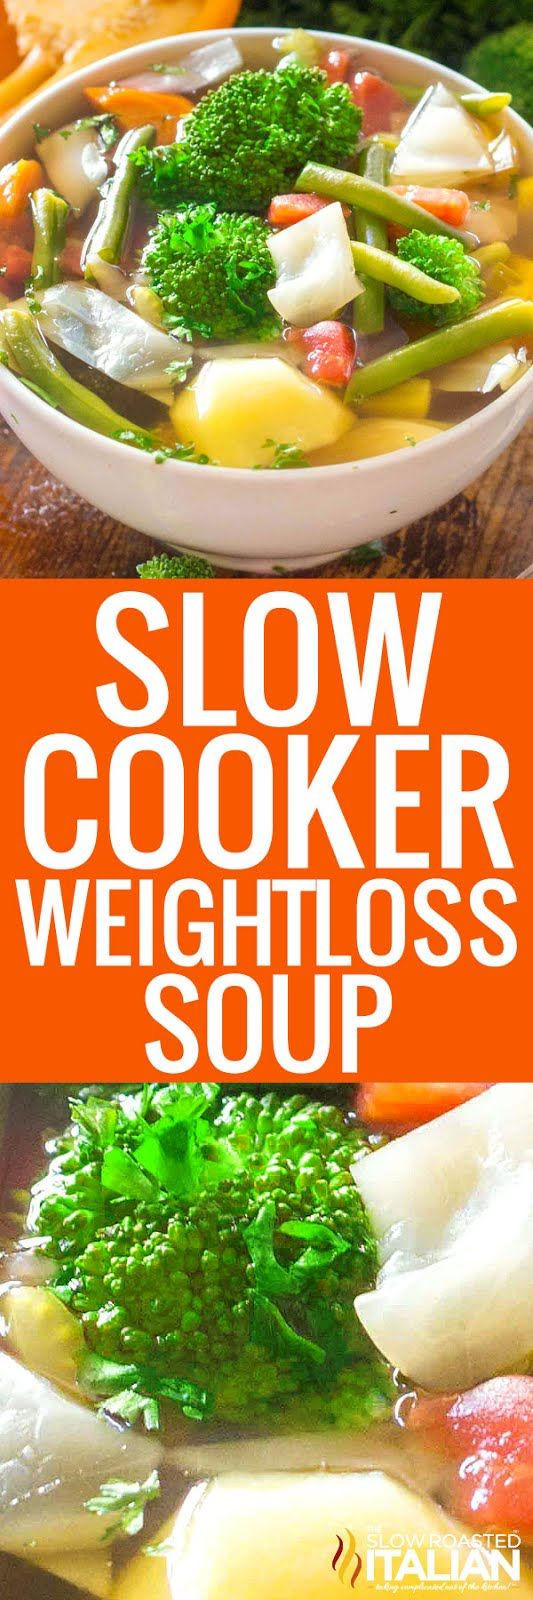 Slow Cooker Weight Loss Soup is a ridiculously easy to make recipe, packed with veggies and it will help you detoxify your body!